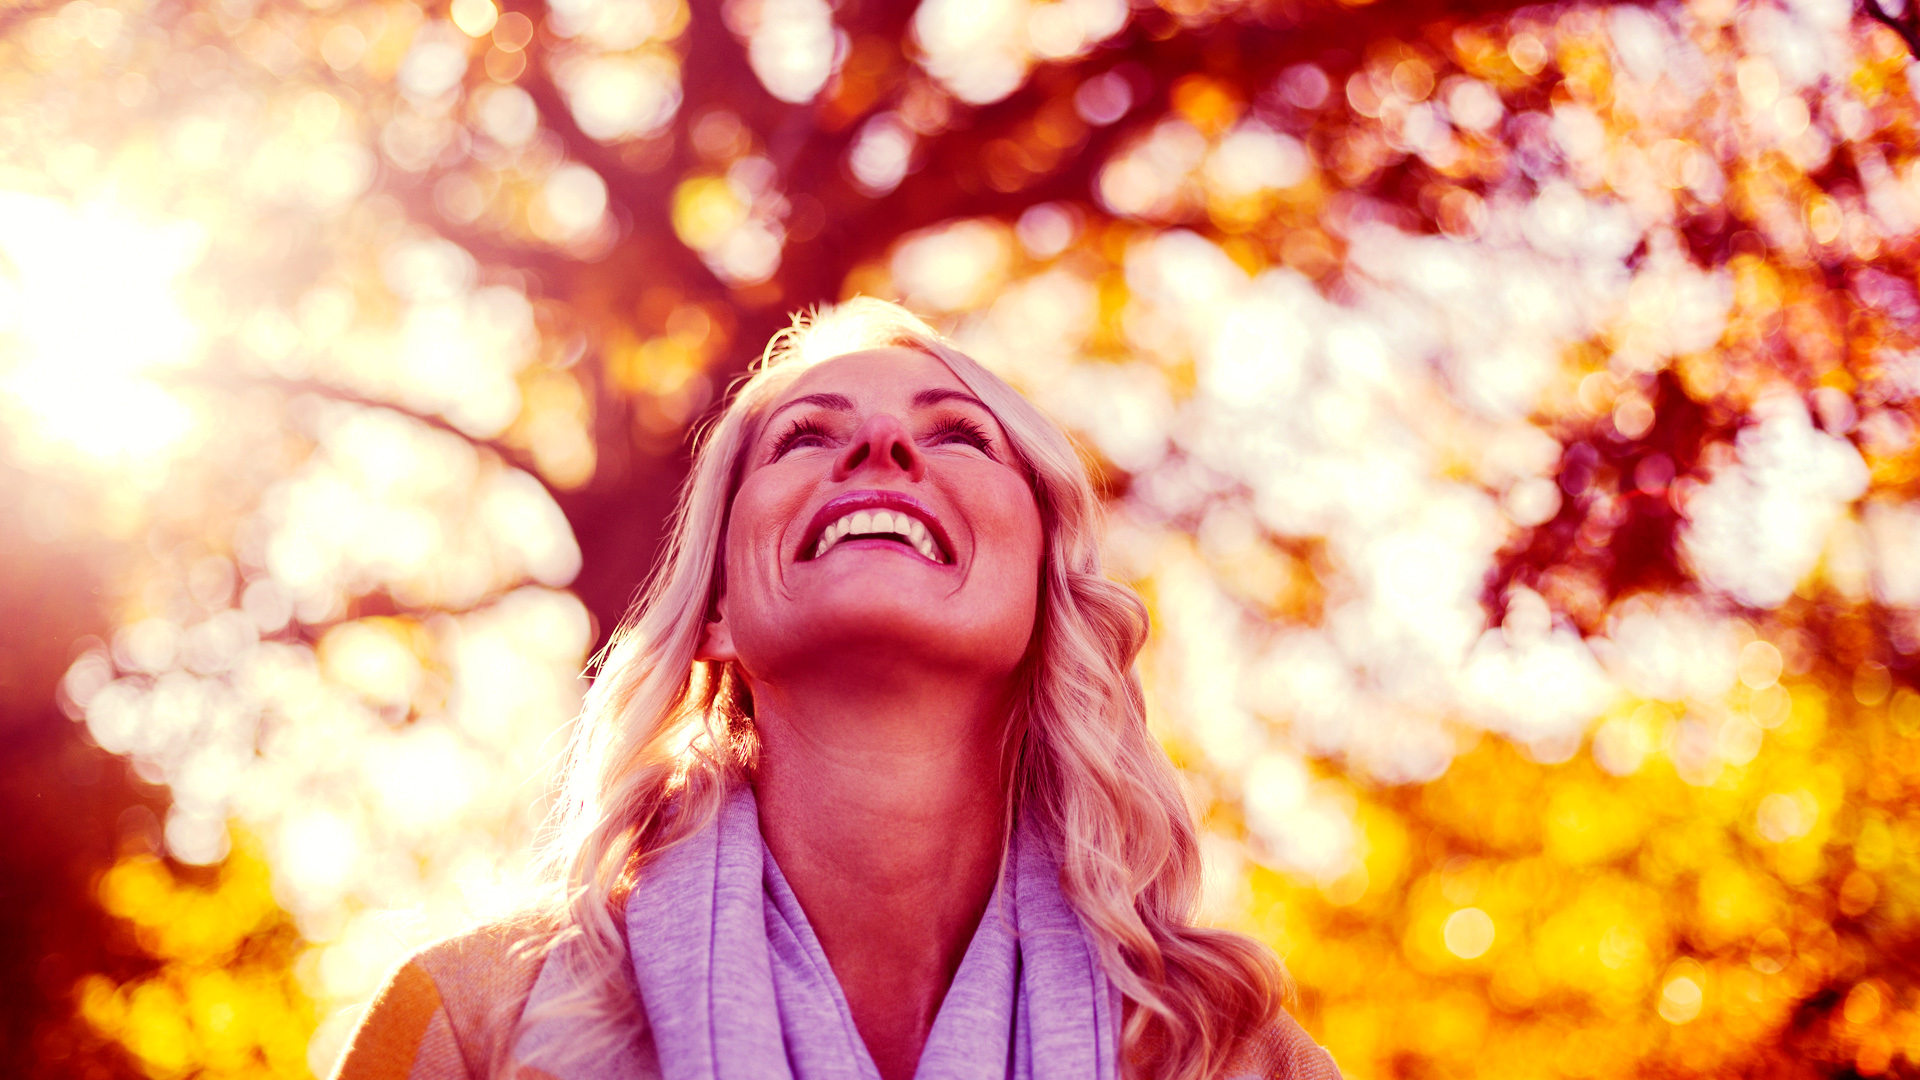 Woman looking up at trees with happiness